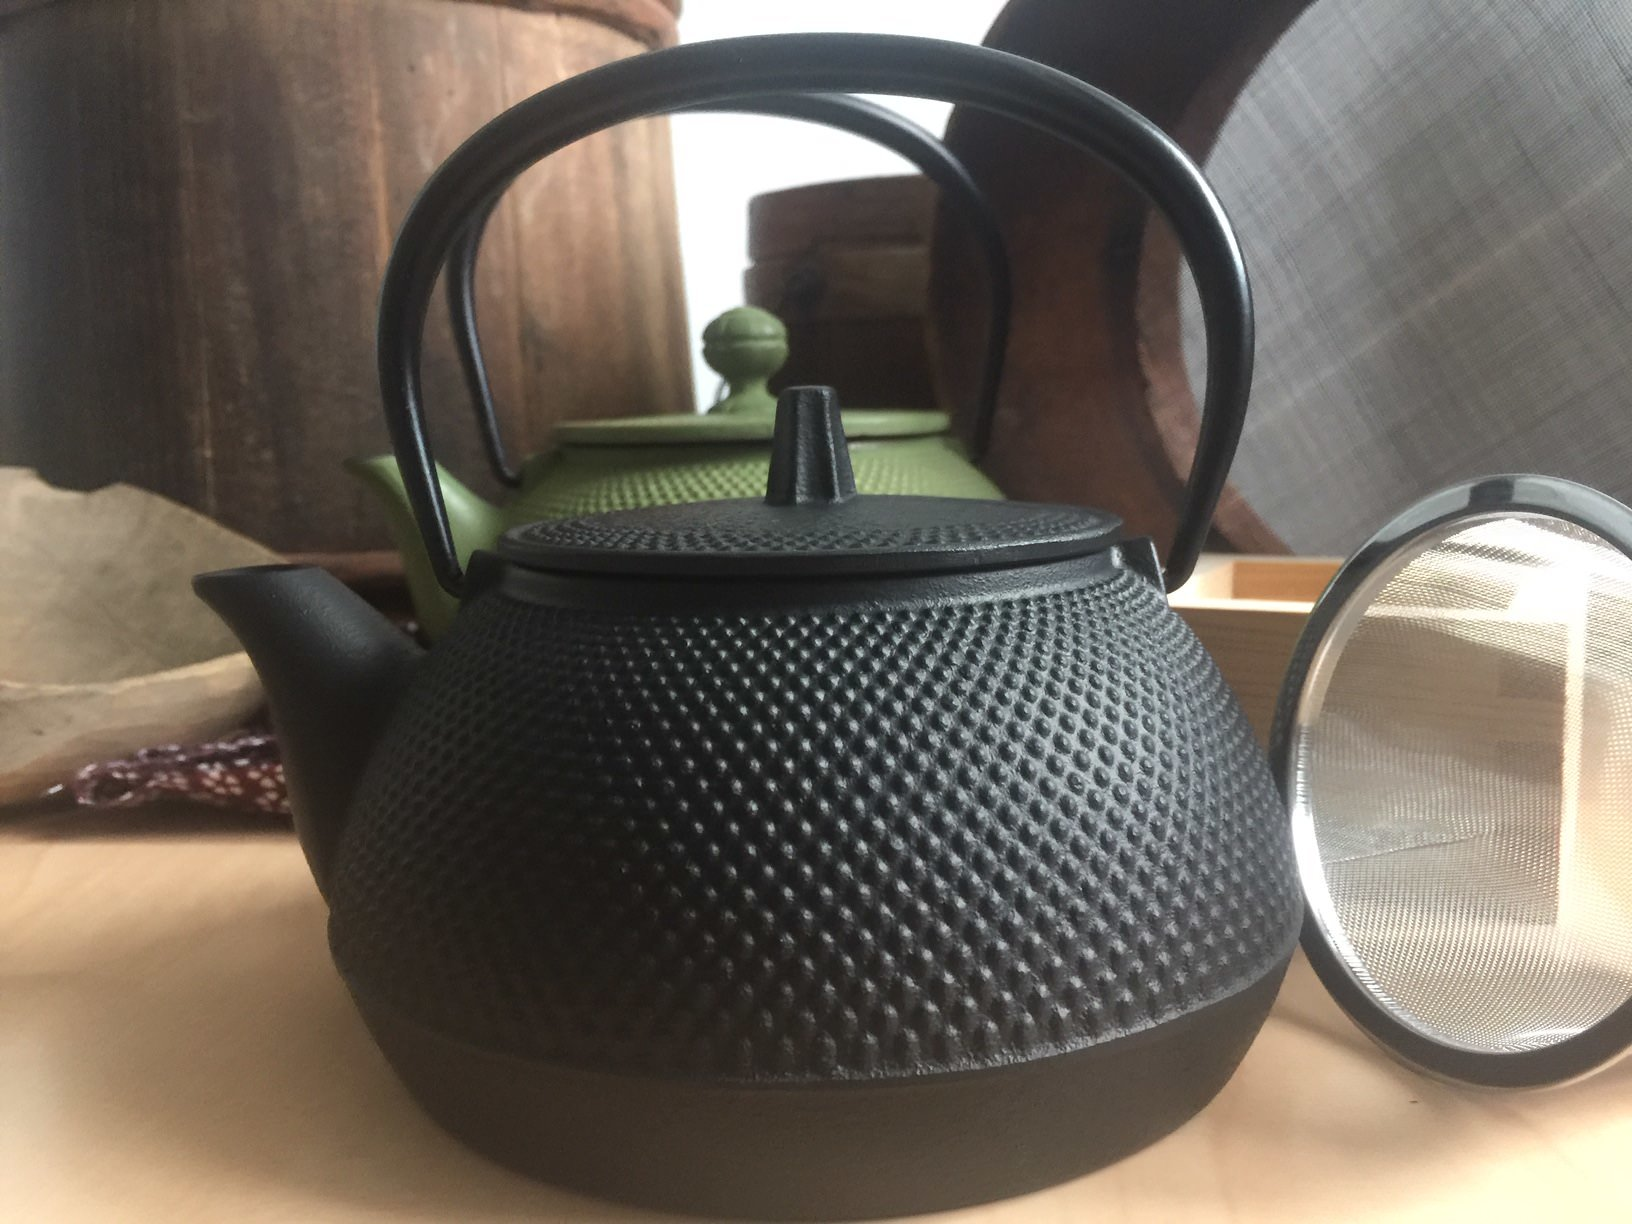 Is Japanese cast iron any good?